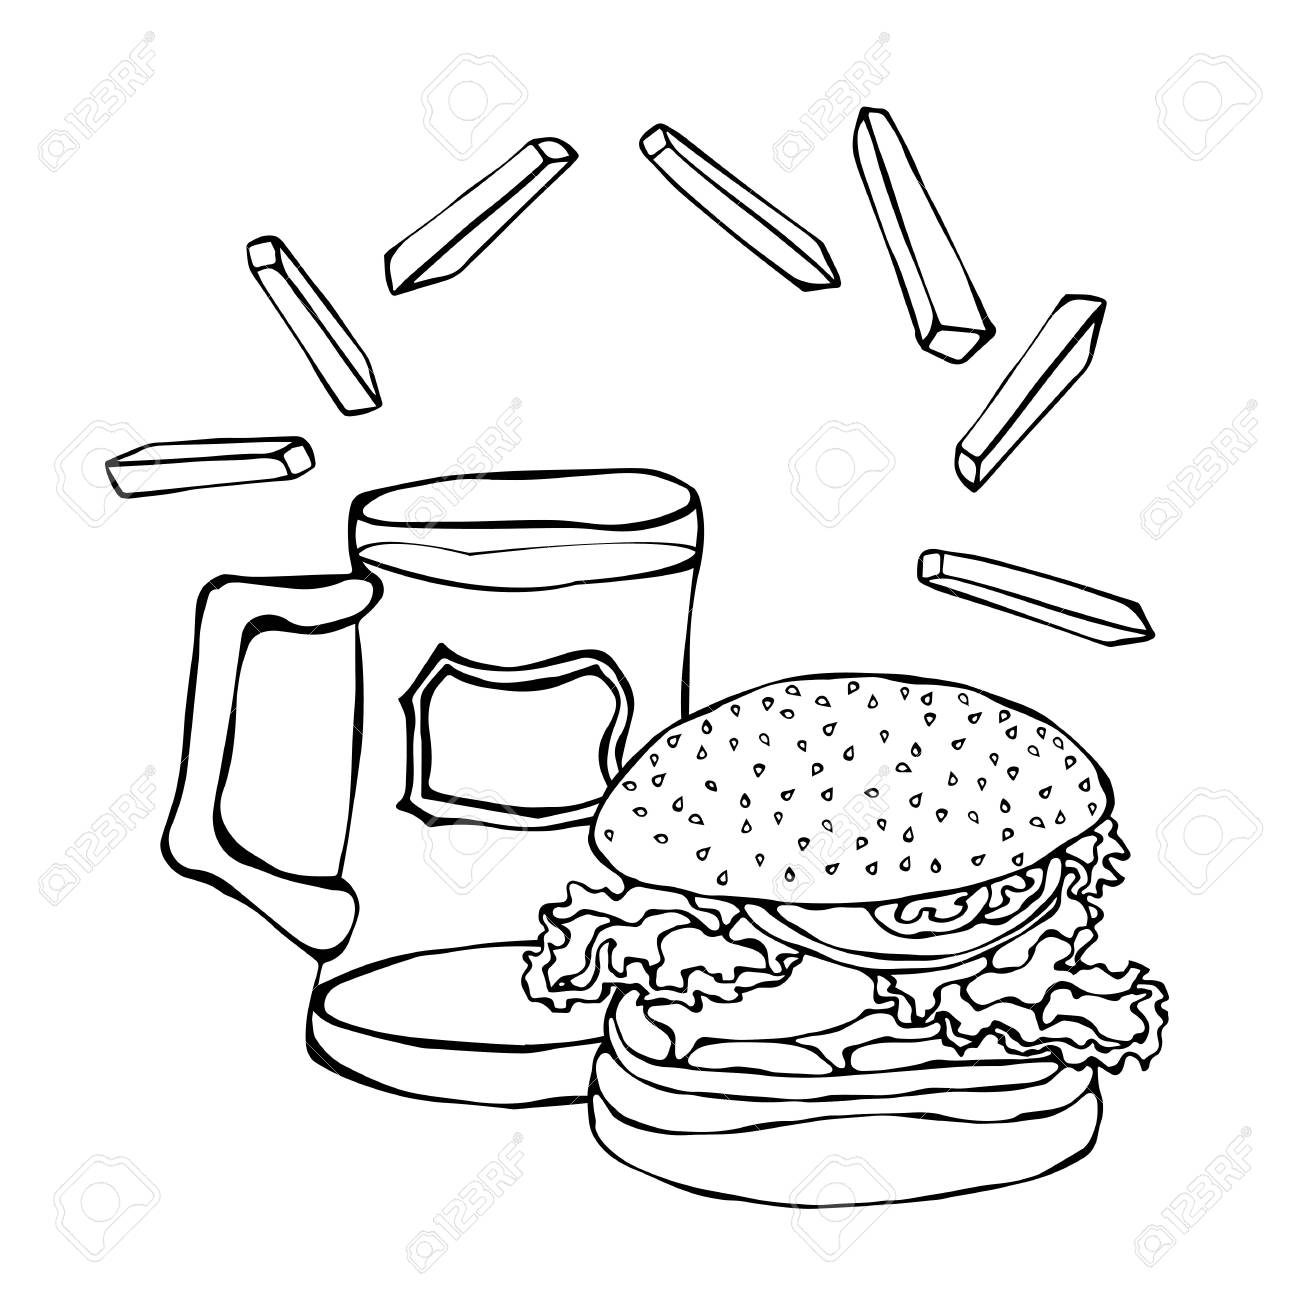 Big Hamburger Or Cheeseburger Beer Mug Or Pint And Fried Potato Royalty Free Cliparts Vectors And Stock Illustration Image 80763293